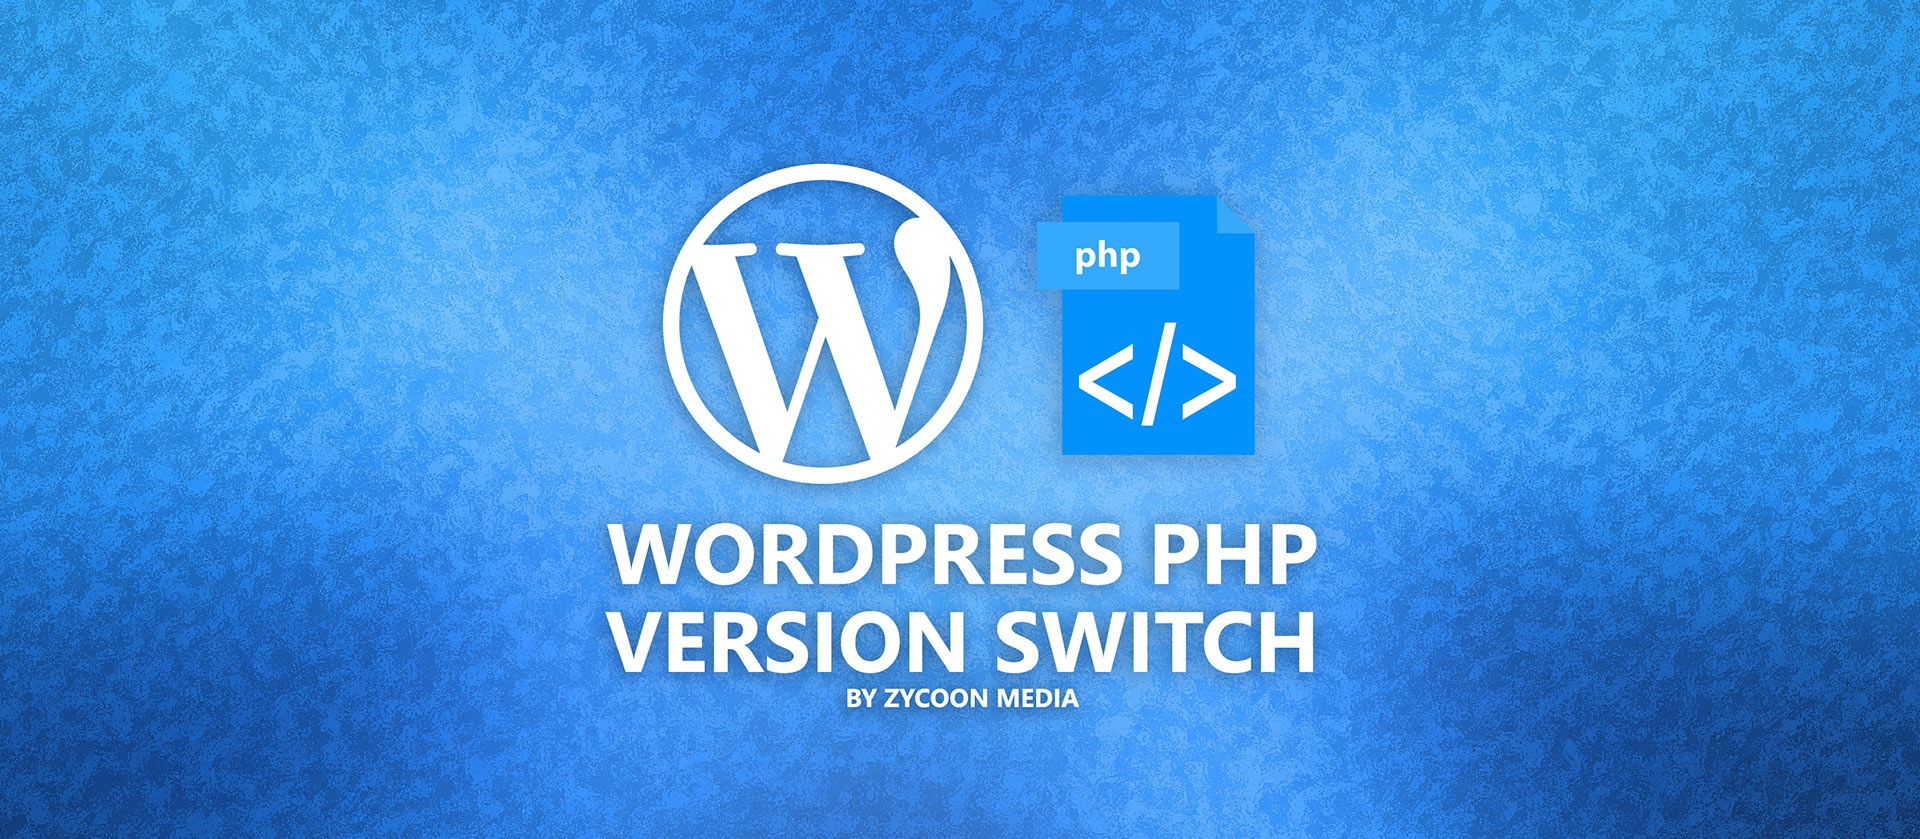 Wordpress Php Version Switch